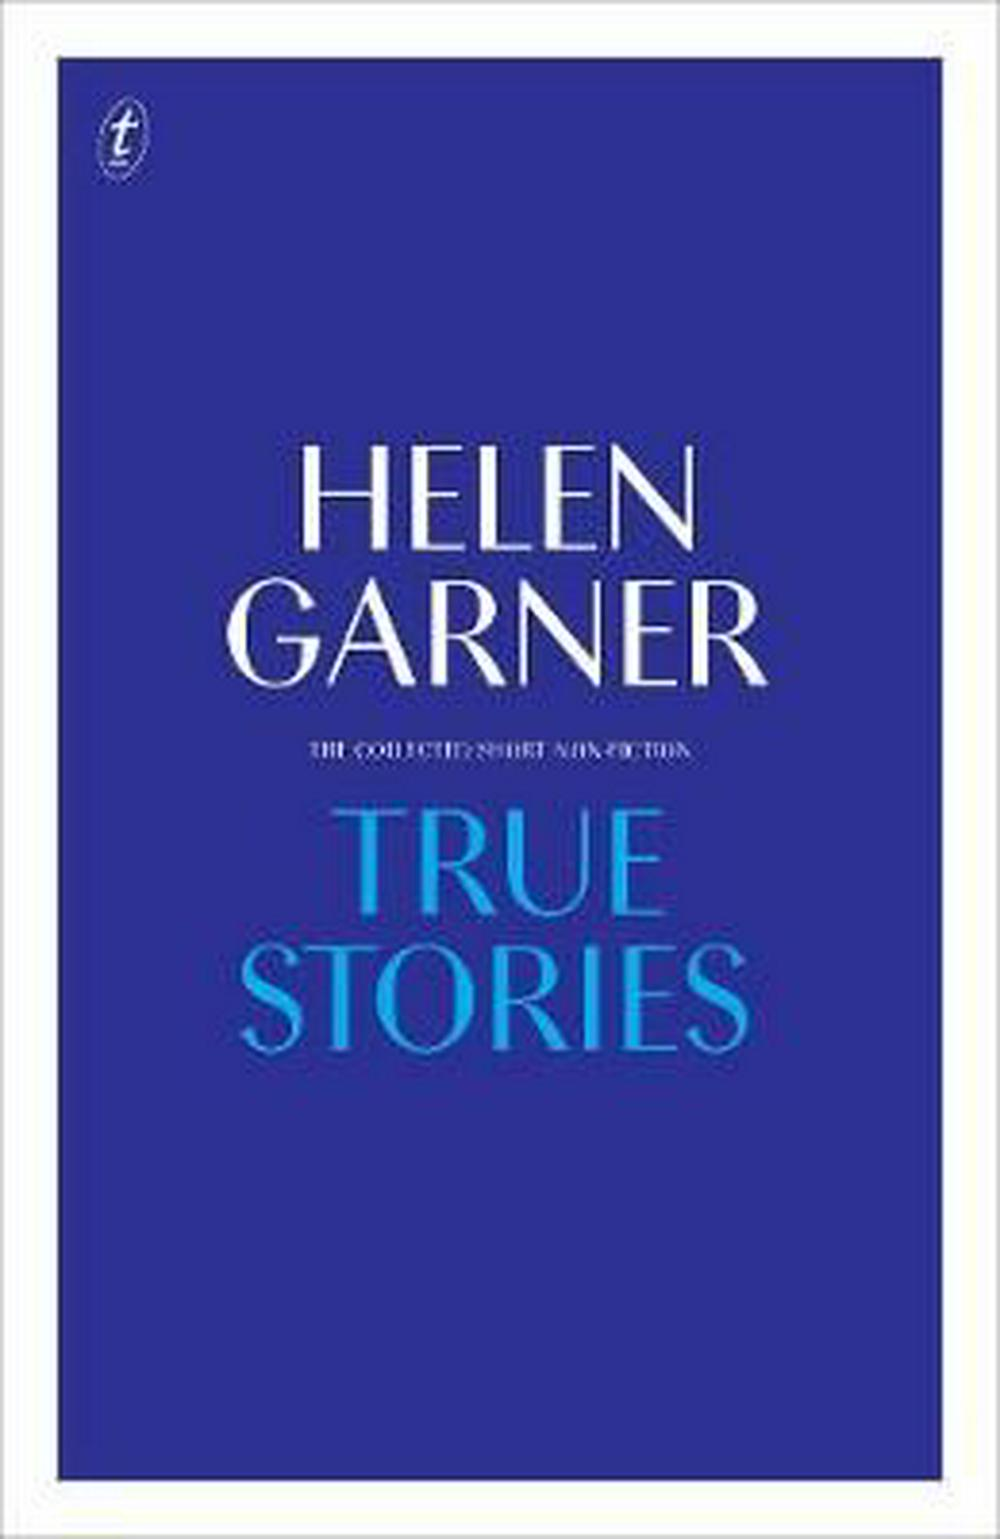 True StoriesThe Collected Short Non-Fiction by Helen Garner, ISBN: 9781925498875